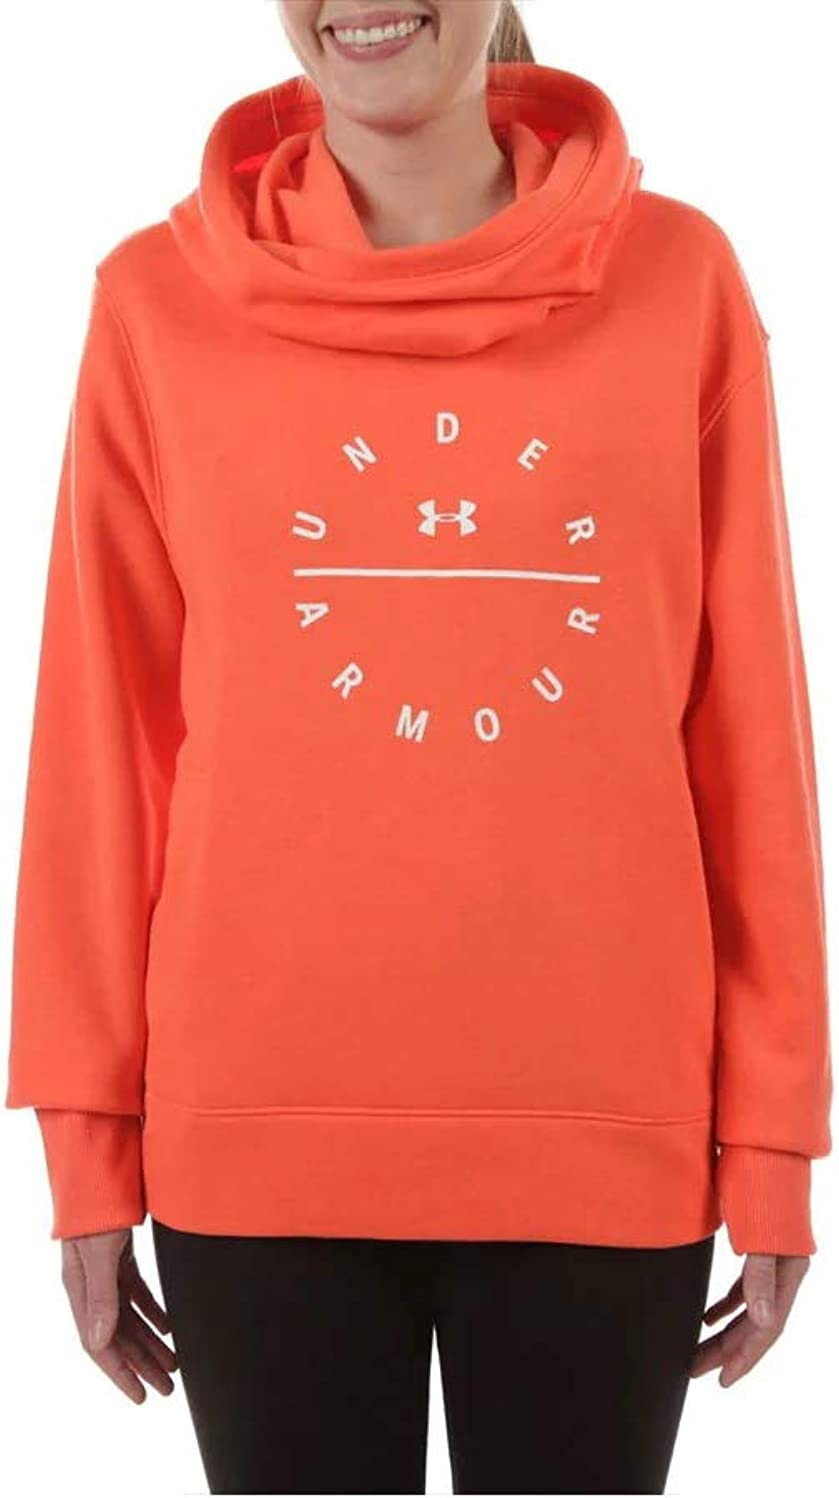 Under Armour Women's Rival Funnel Neck Graphic Hoodie Orange